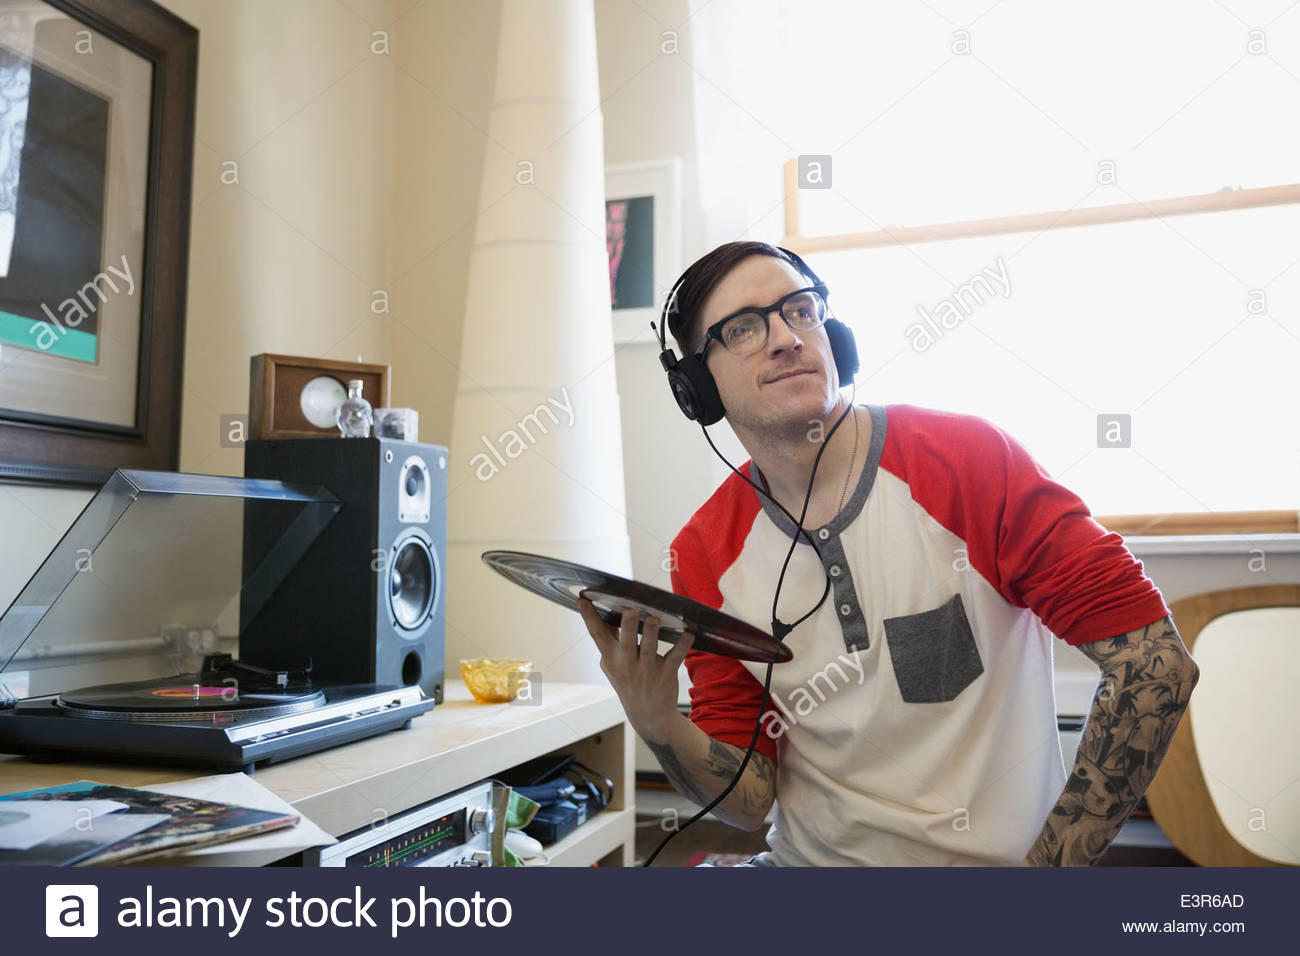 Man with headphones listening to records - Stock Image